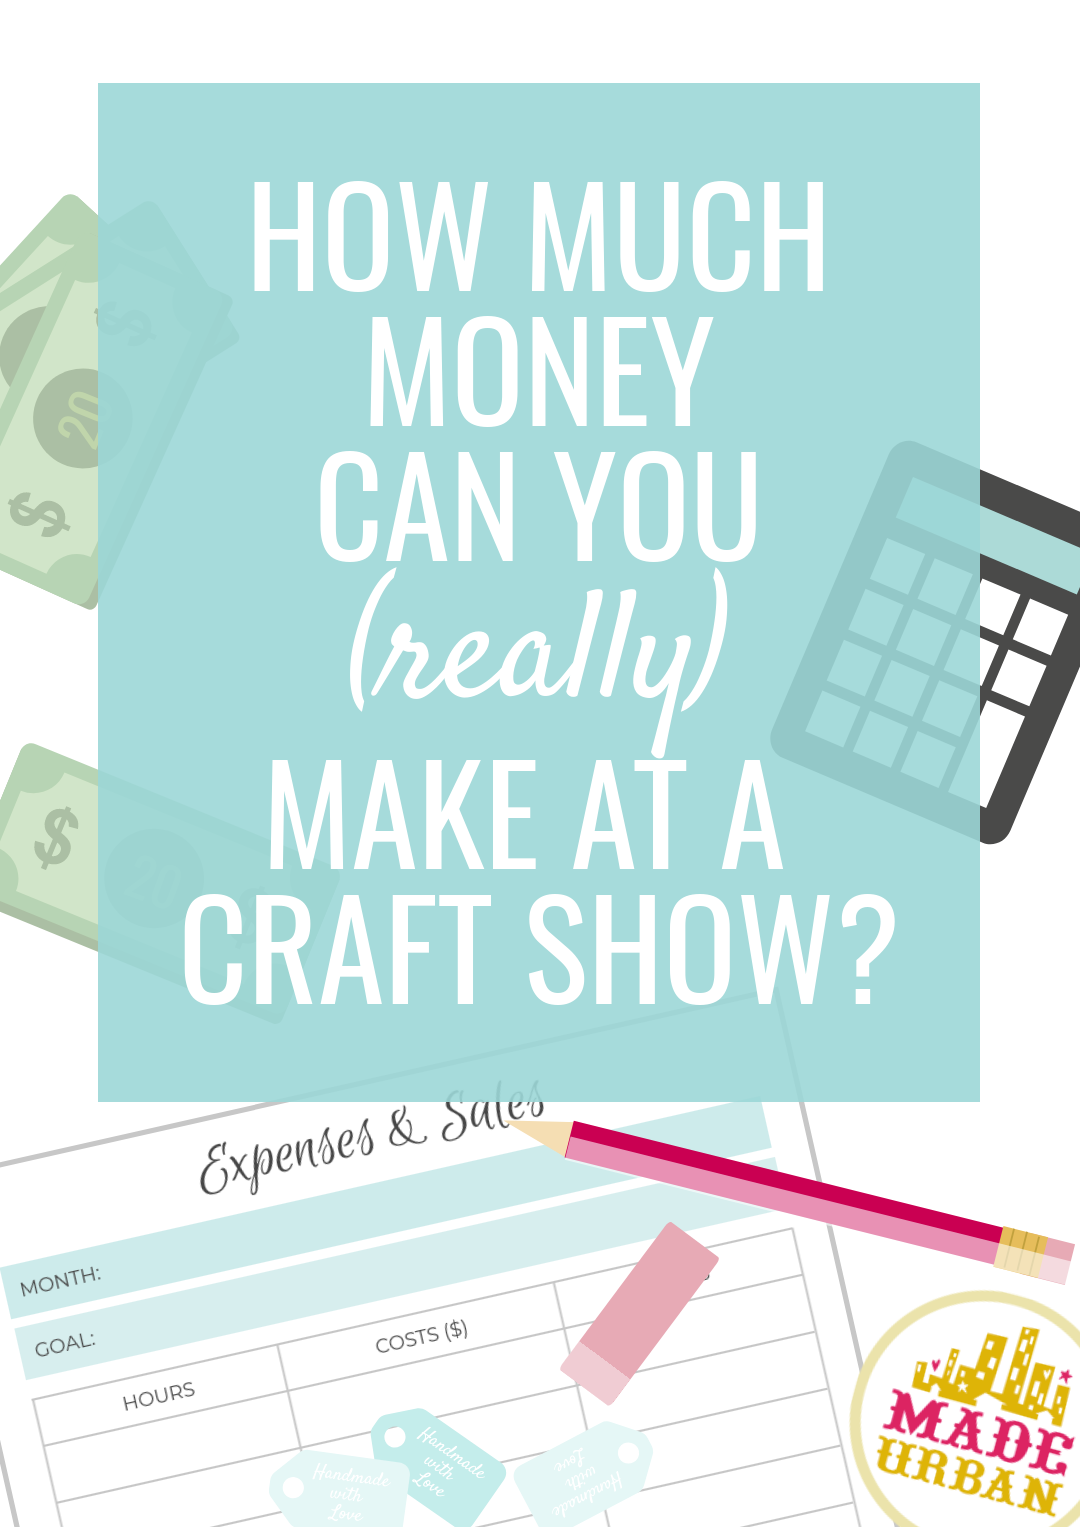 Revenue made at craft shows depends on so many factors. Here's how to determine how much money your business is likely to make and if you'll be profitable.